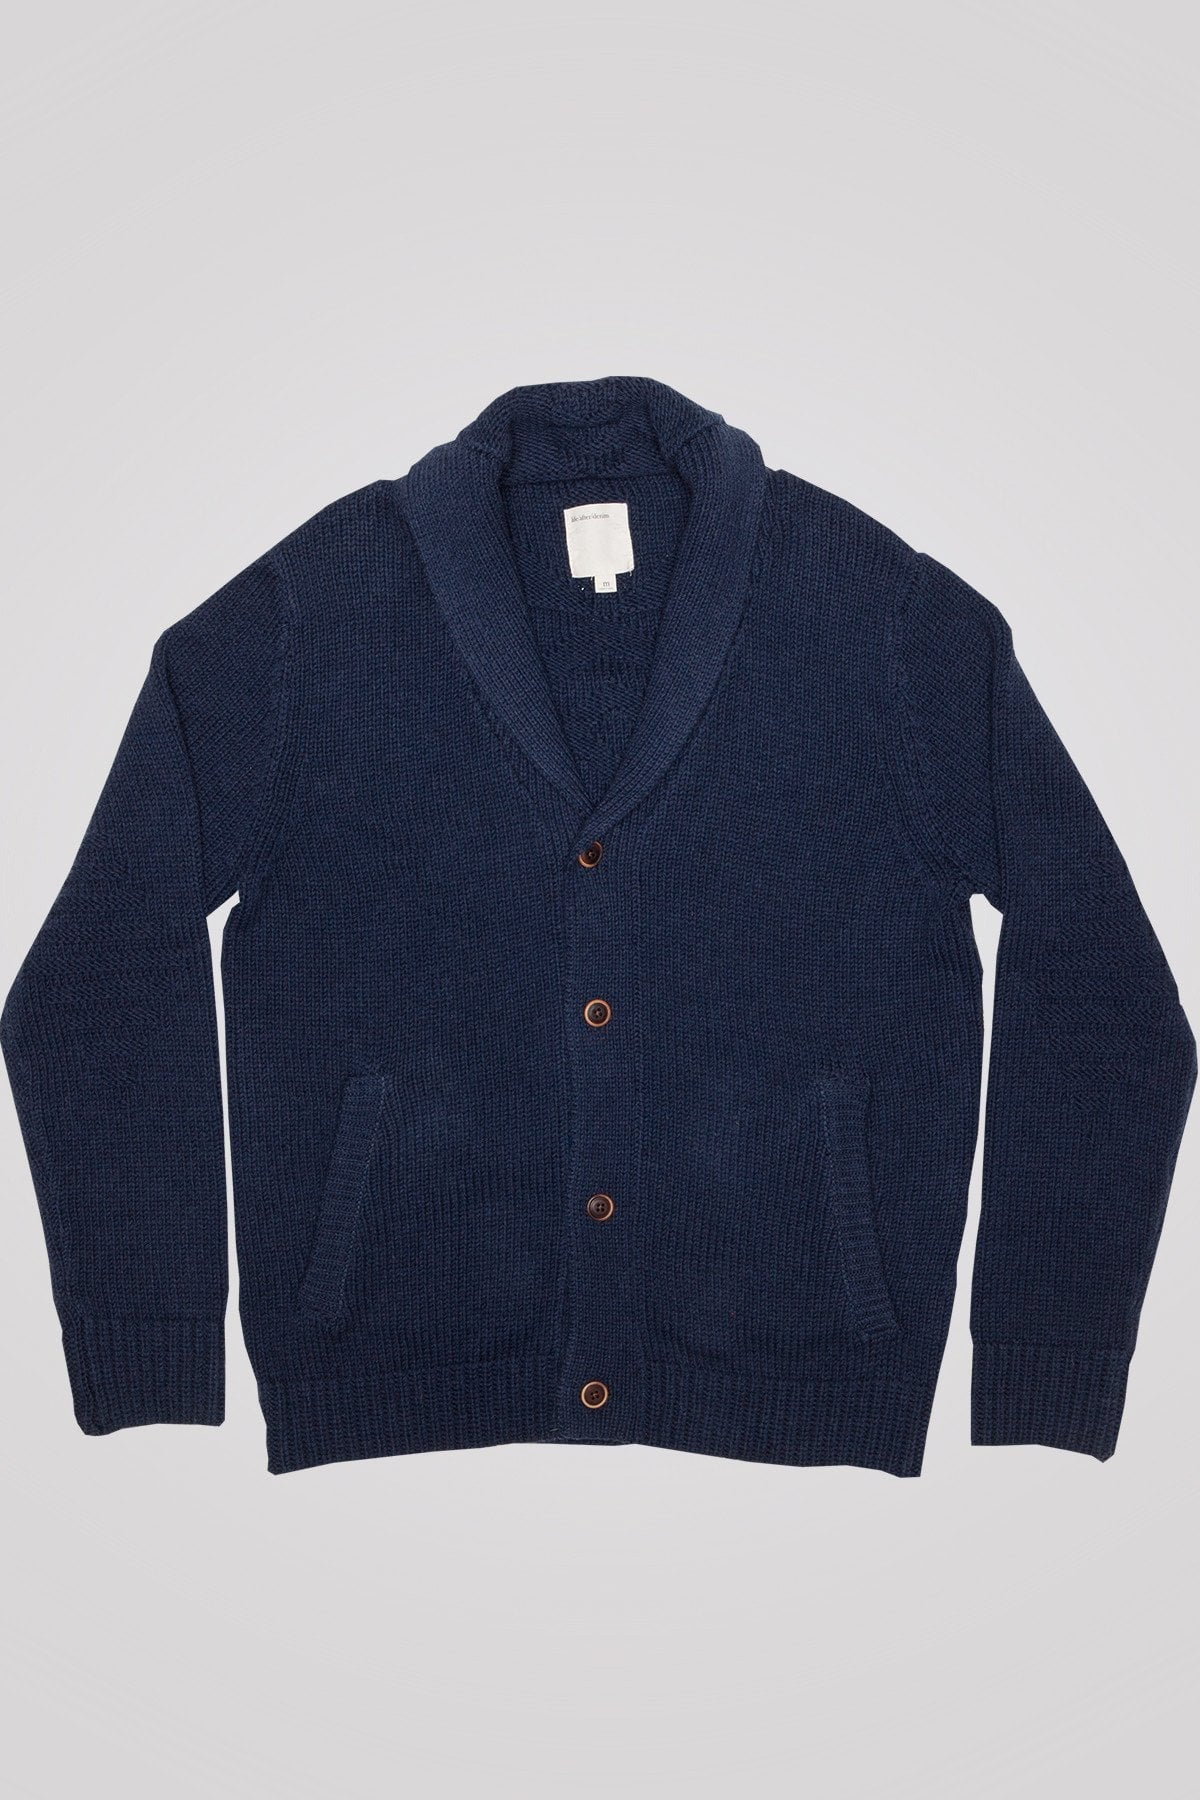 Wythe Cardigan - NYPD Blue